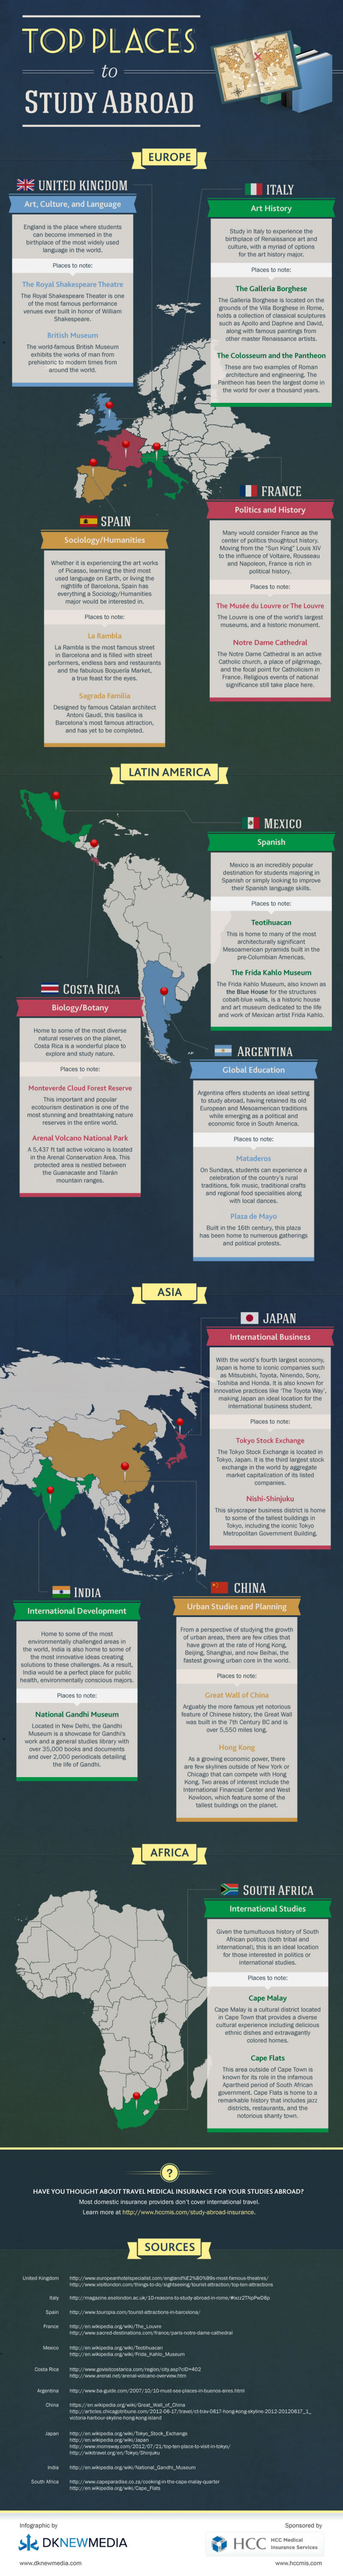 Top Places to Study Abroad Infographic